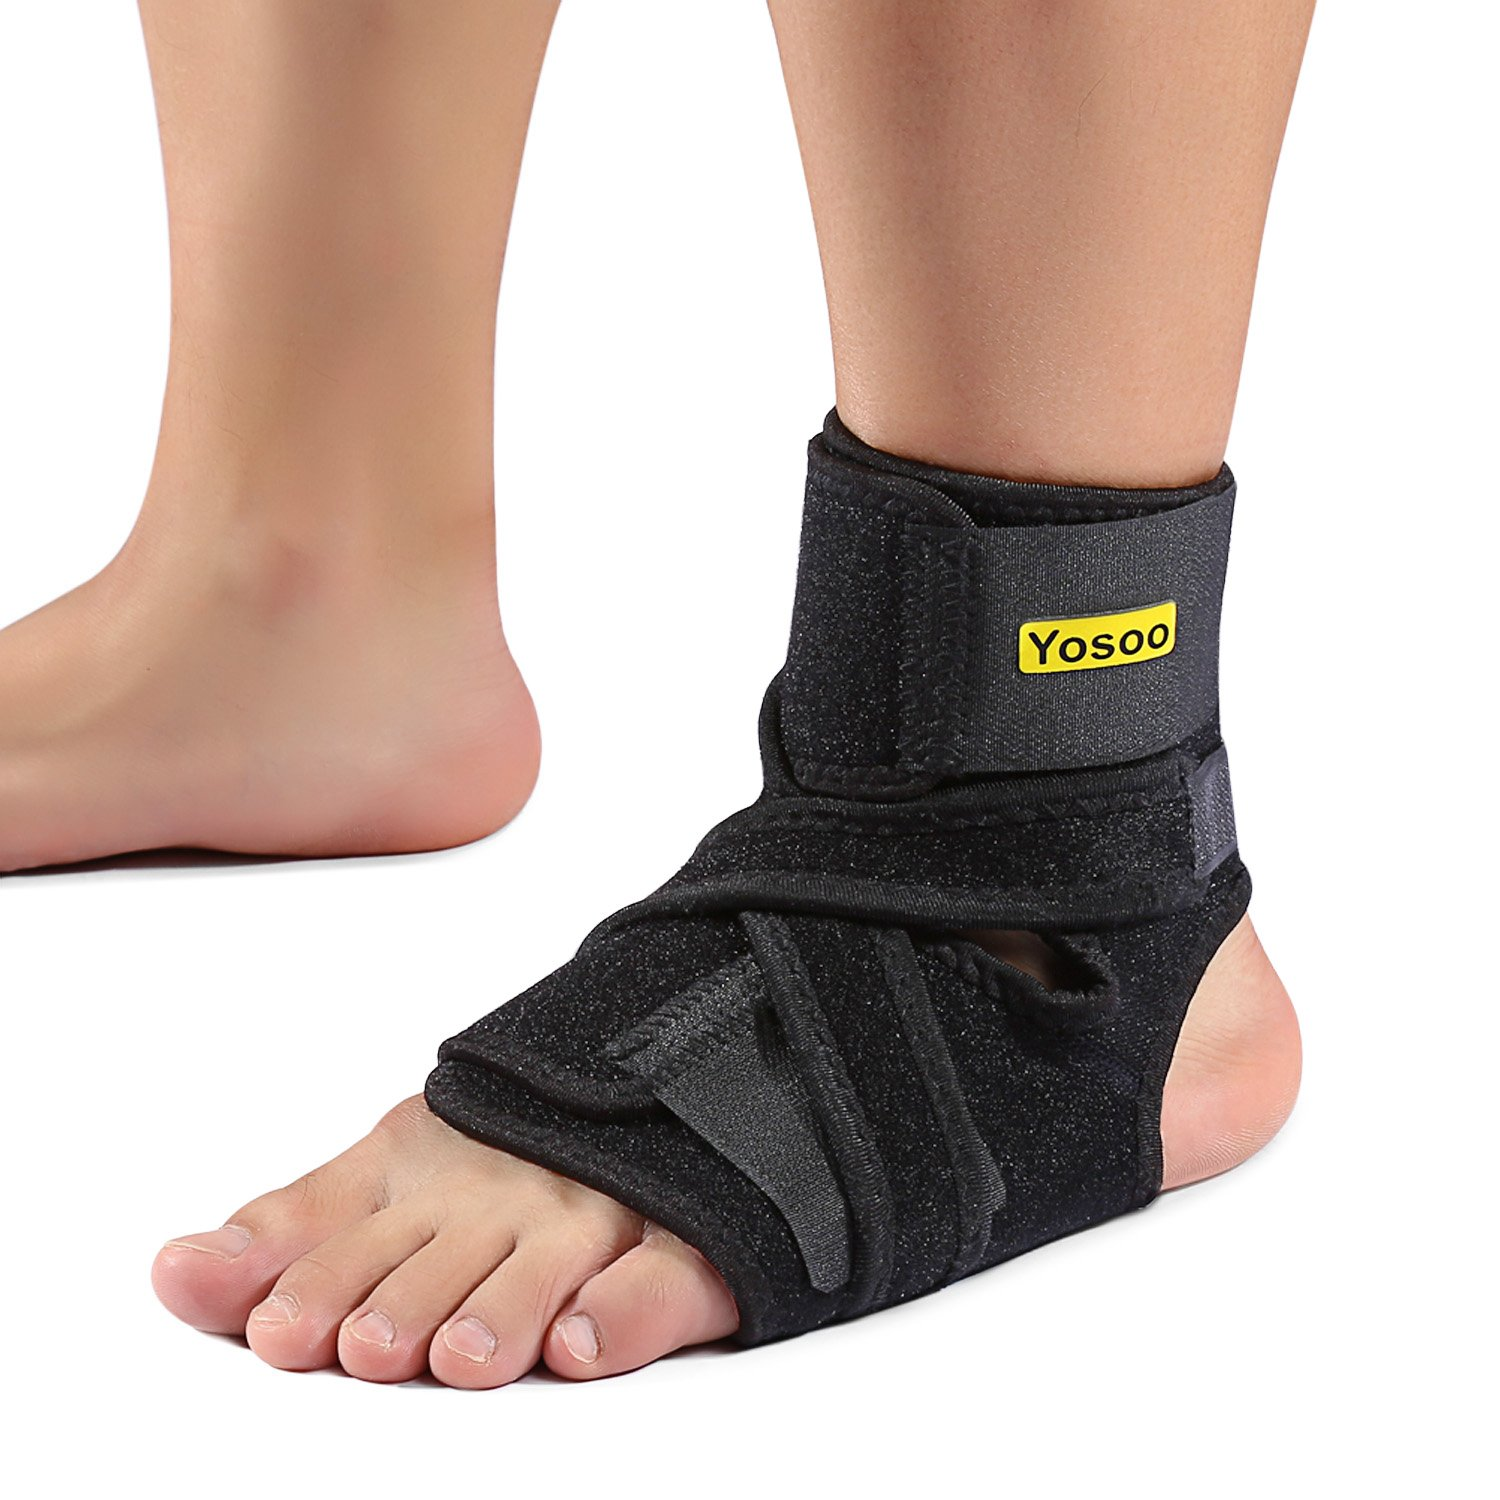 Eulay Breathable Neoprene Ankle Brace for Sprained Ankle,One Size,Black